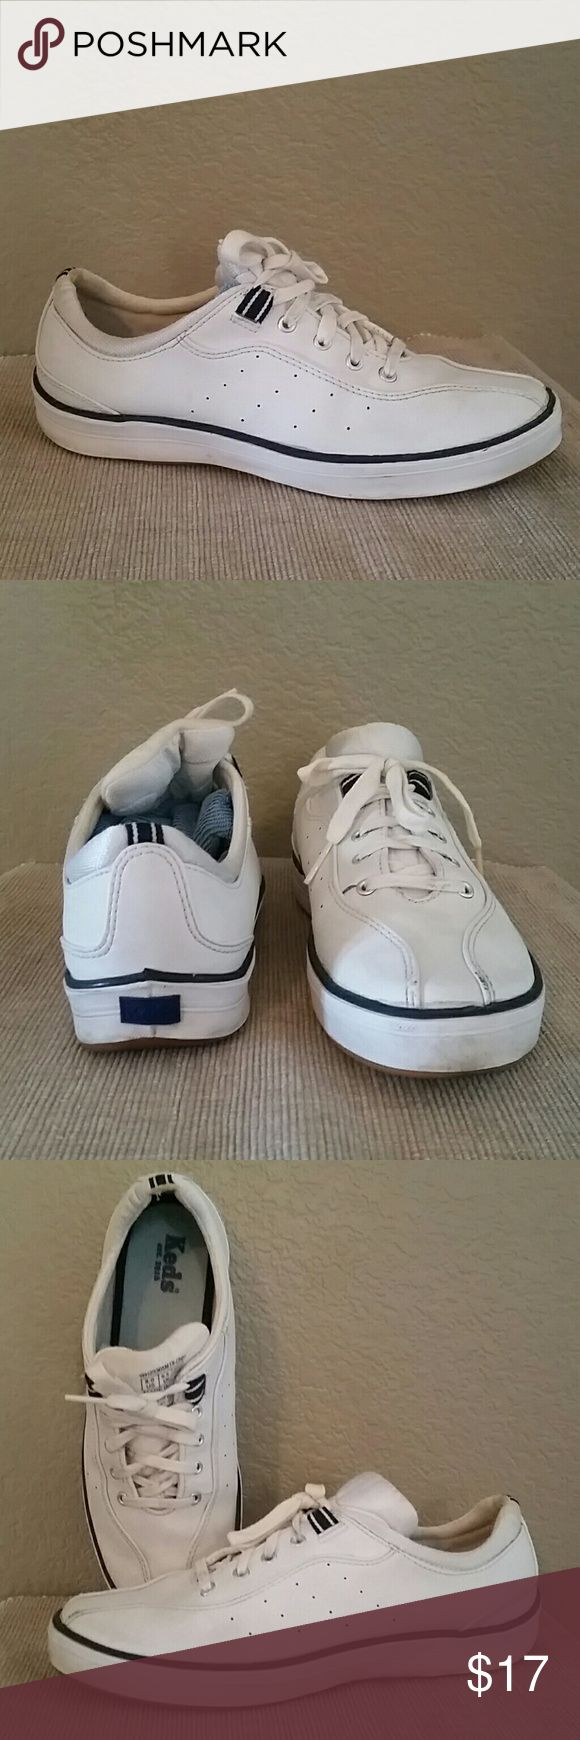 Leather Keds White, navy Keds, used,good condition, 8 Keds Shoes Sneakers